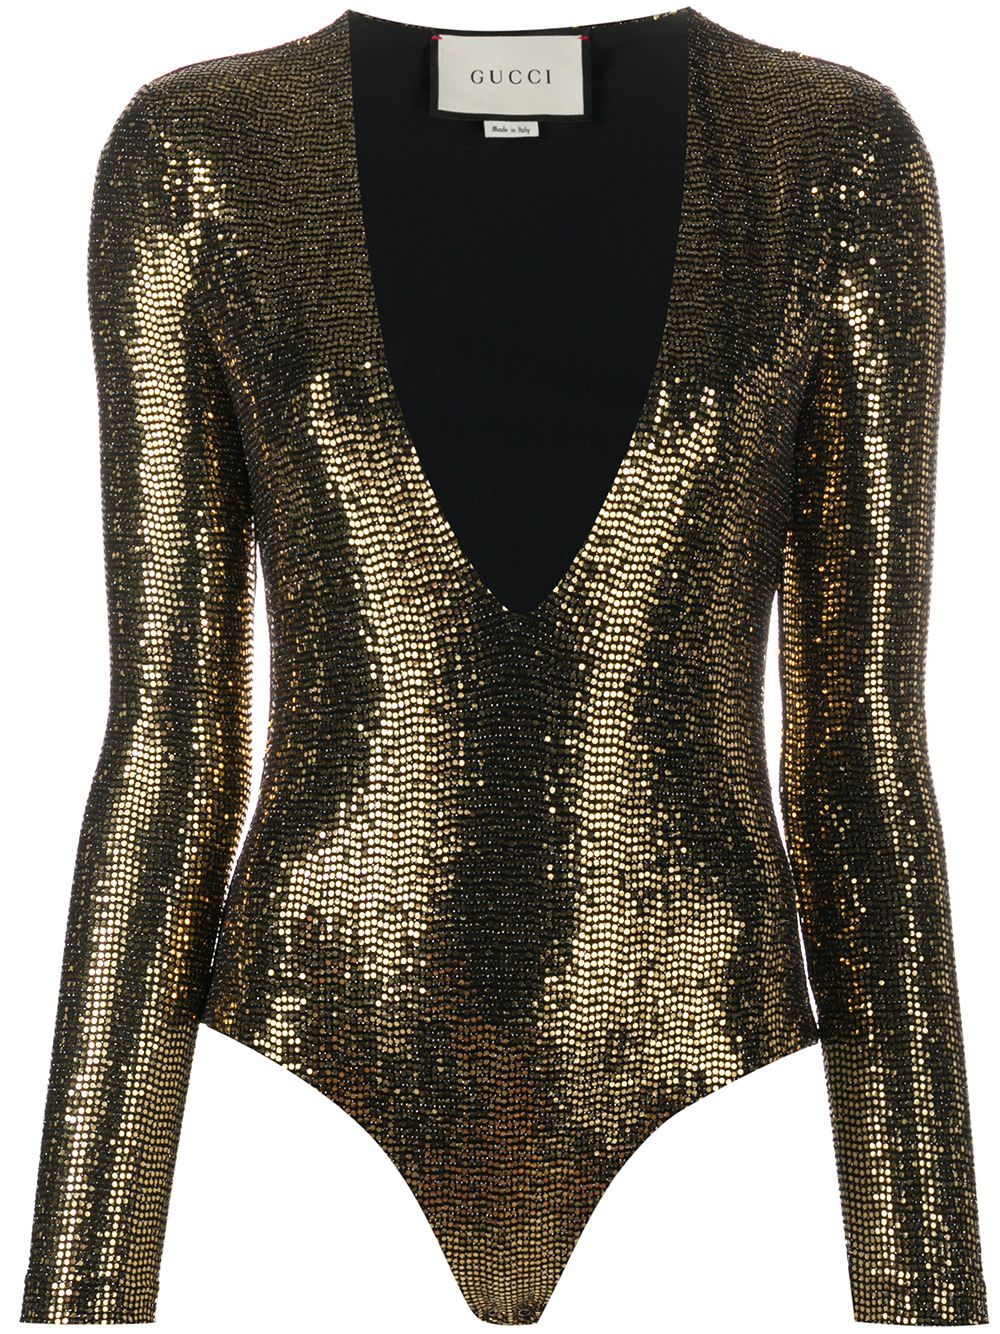 Sequined Body